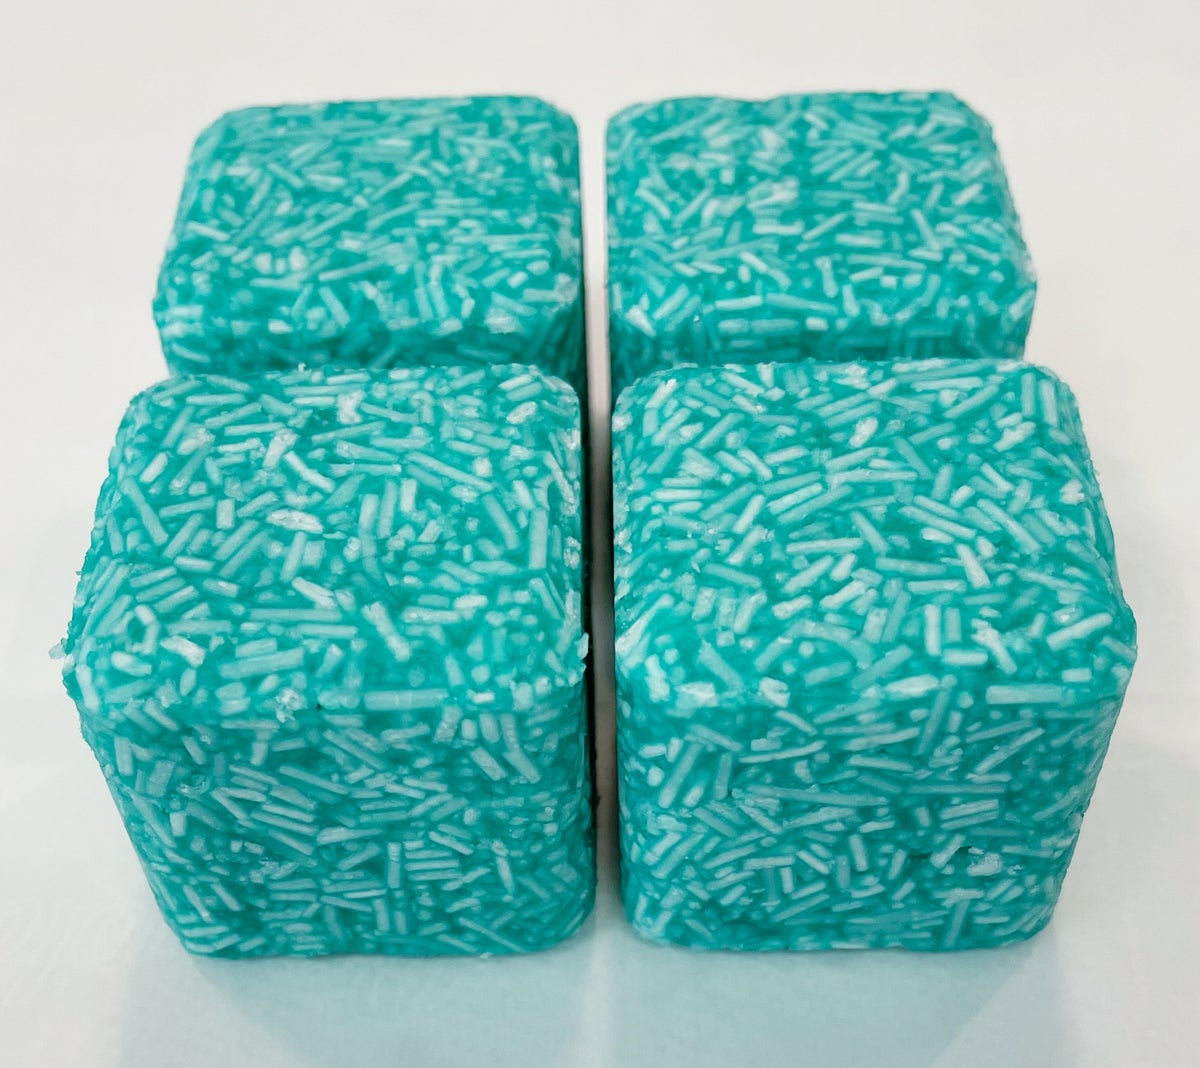 Image of Suds and Silk Solid Shampoo Bar 3 ounces each